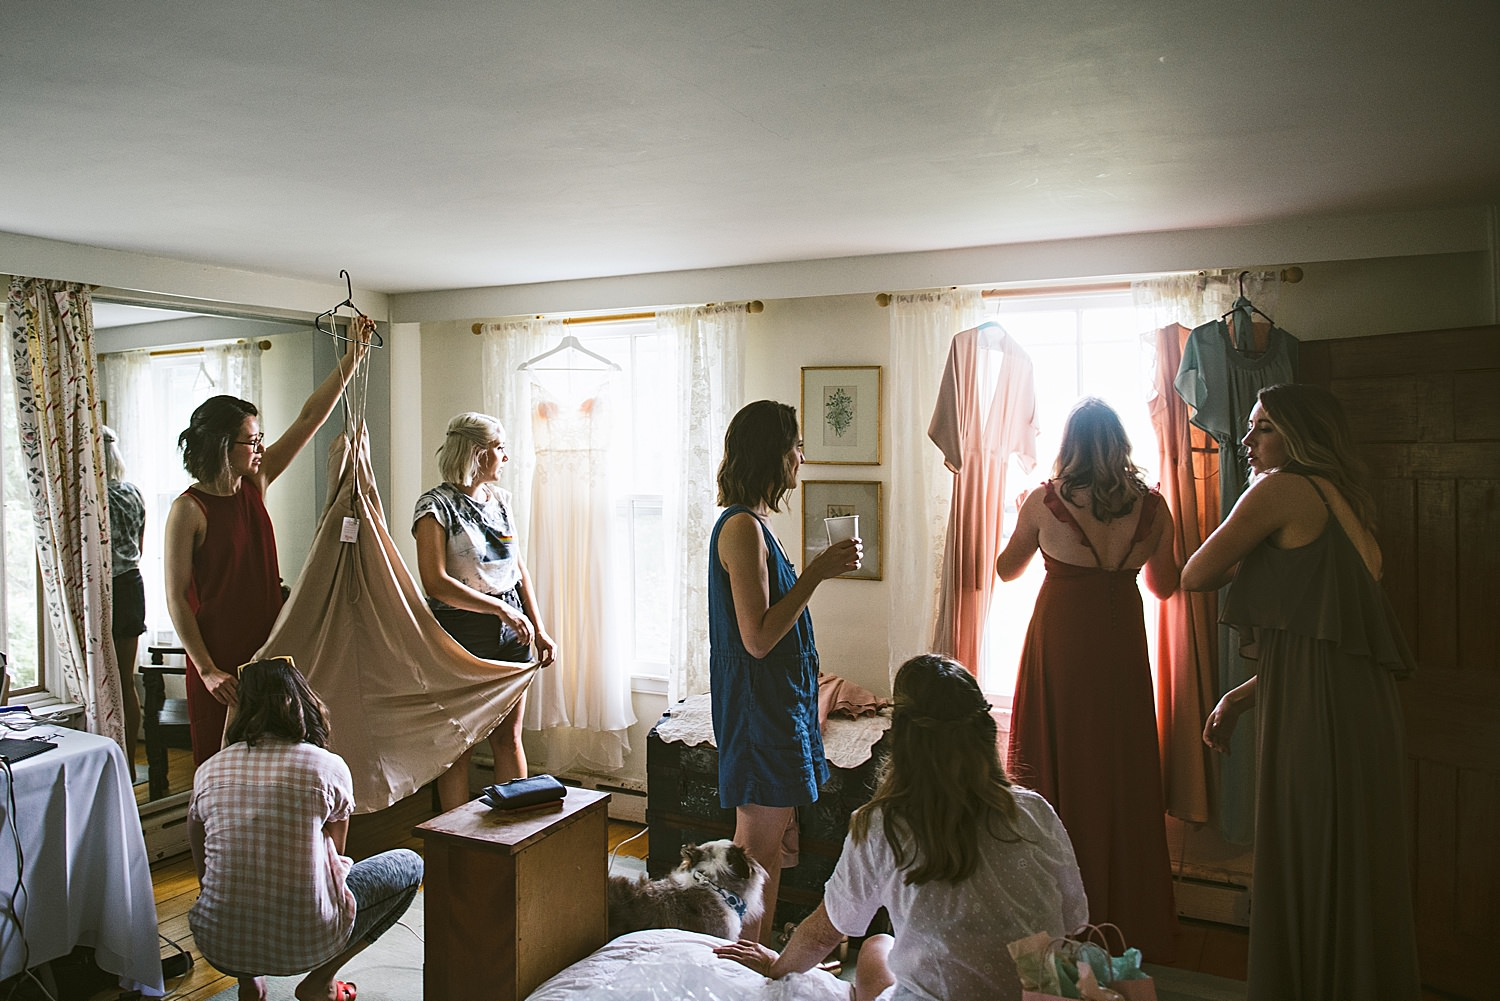 Bride getting ready in a room with all of her bridesmaids